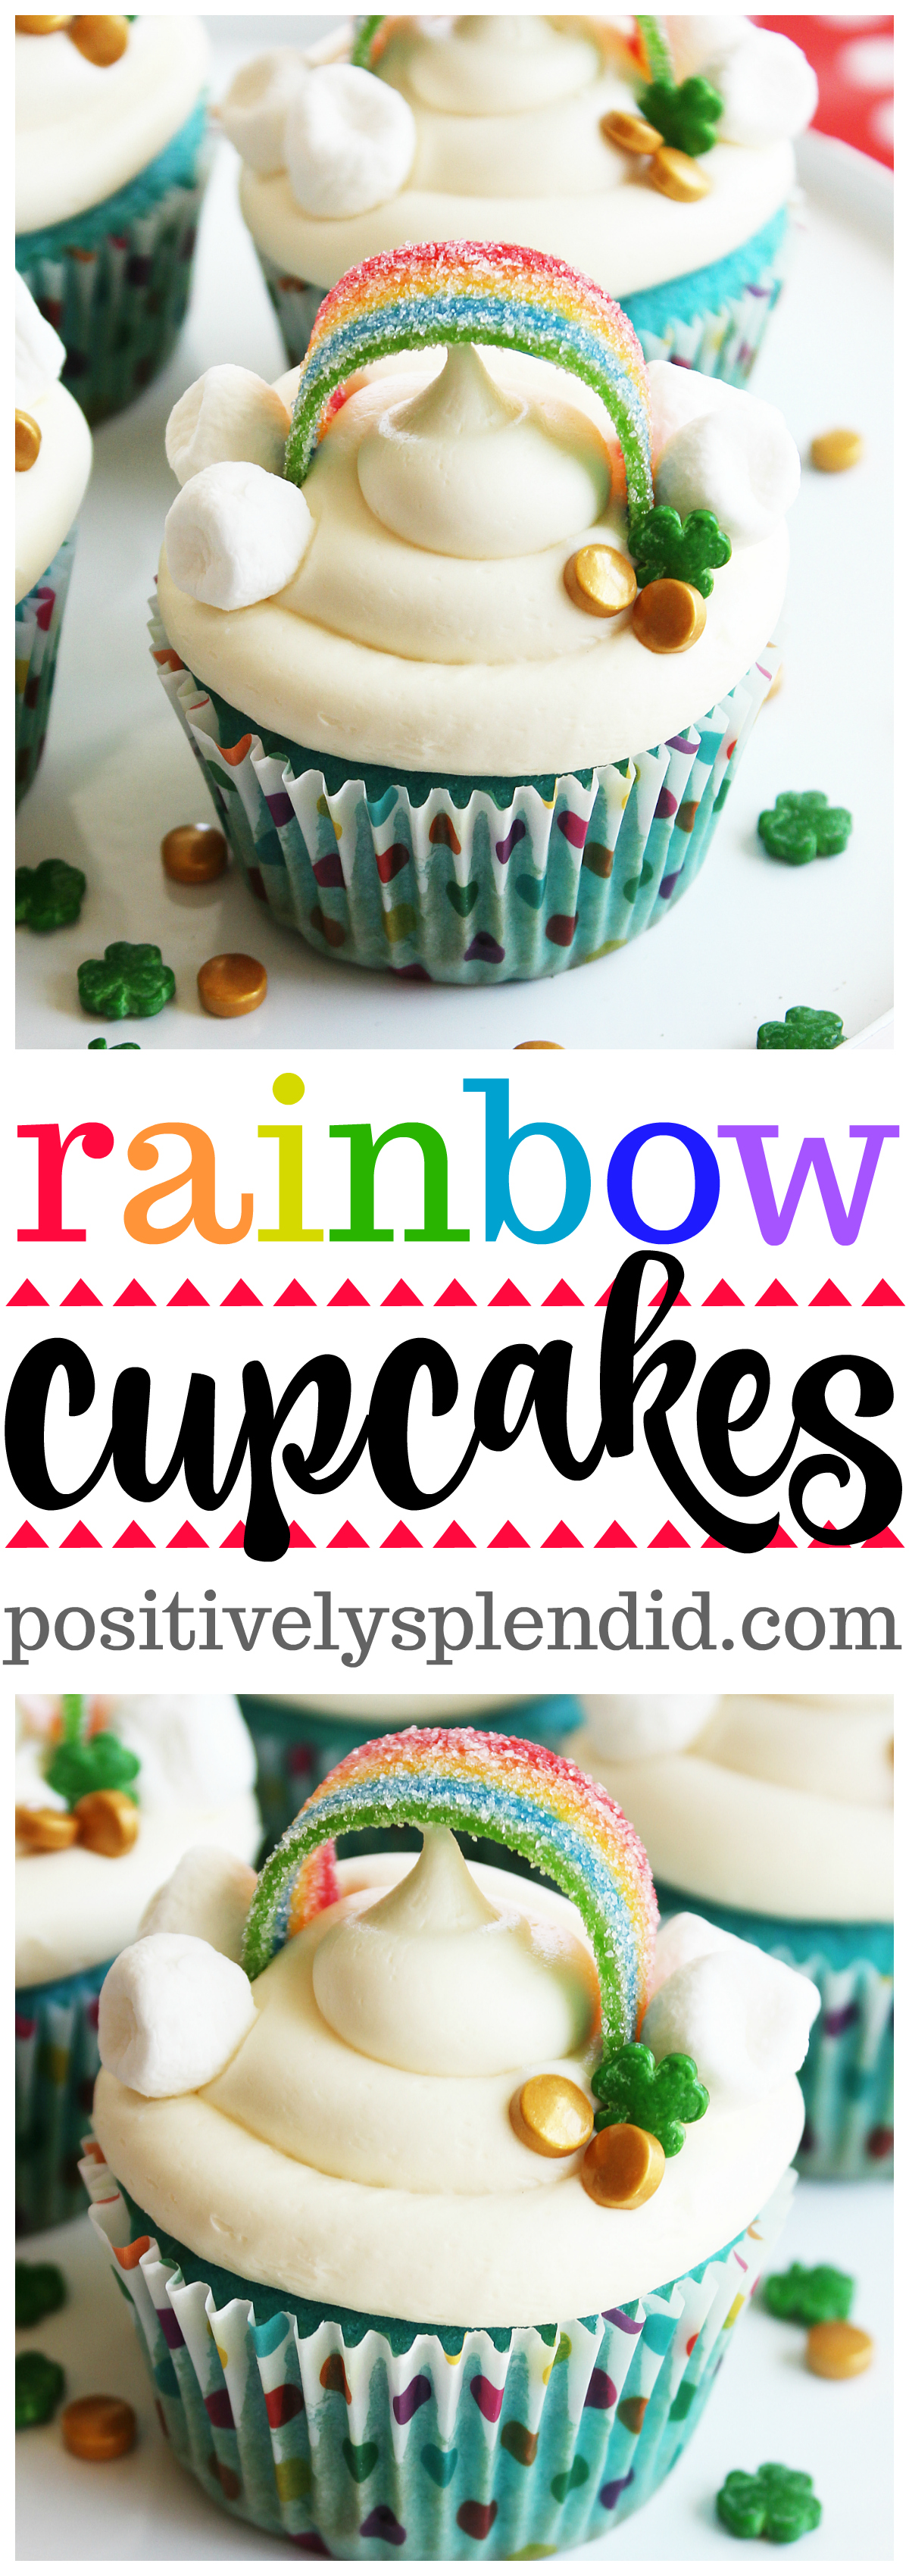 Easy and Adorable Rainbow Cupcakes